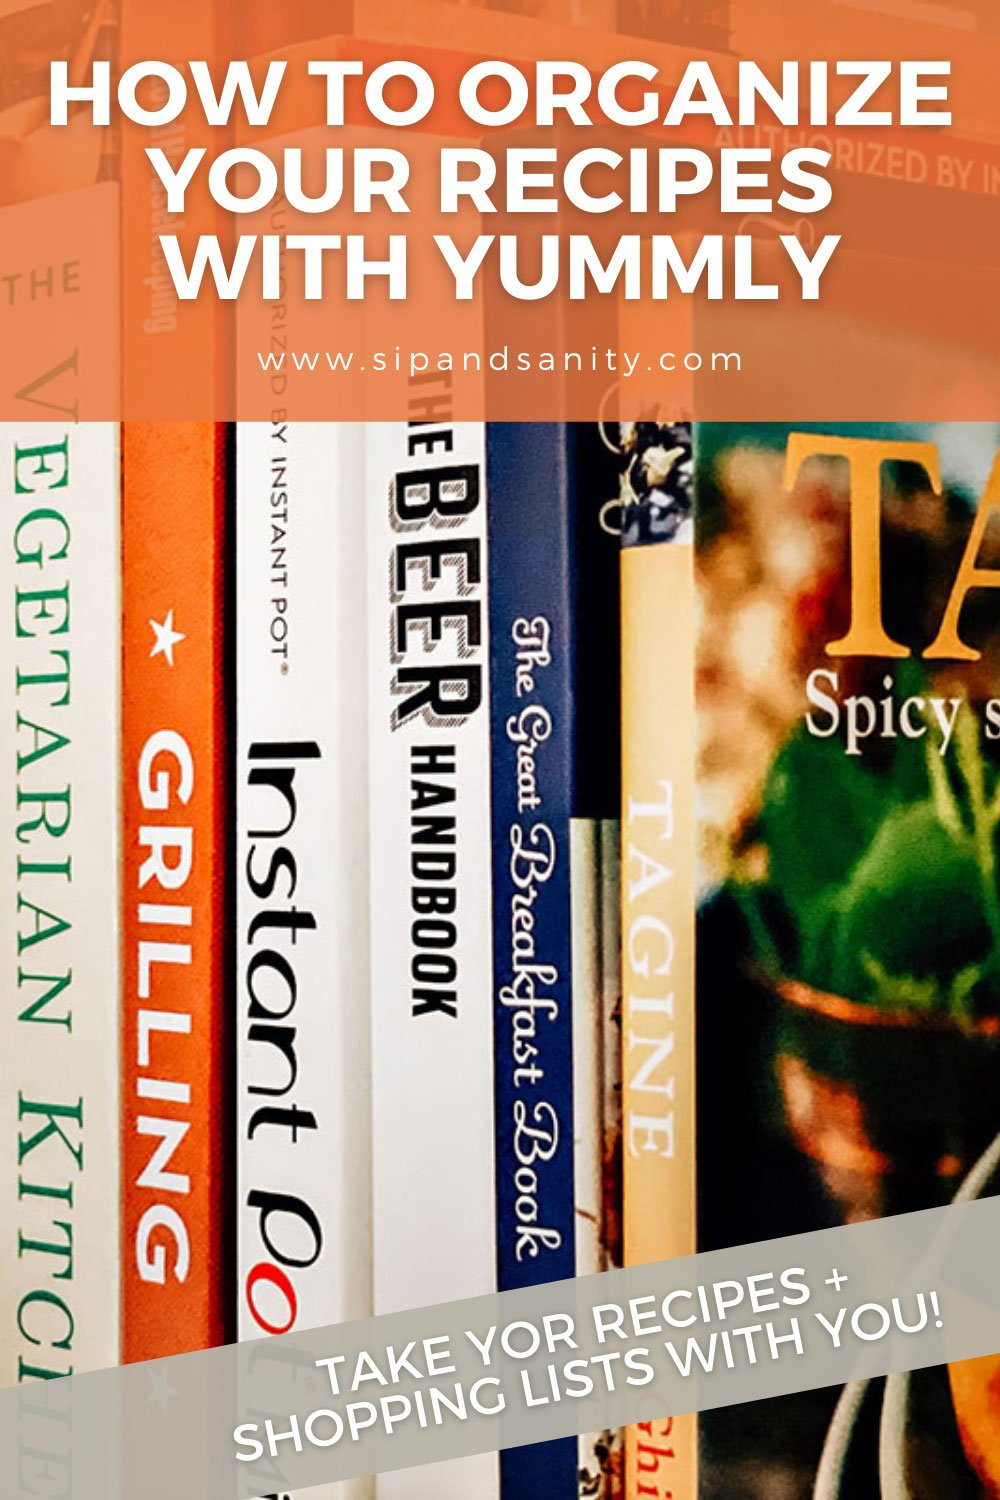 pin image for organizing your recipes with yummly